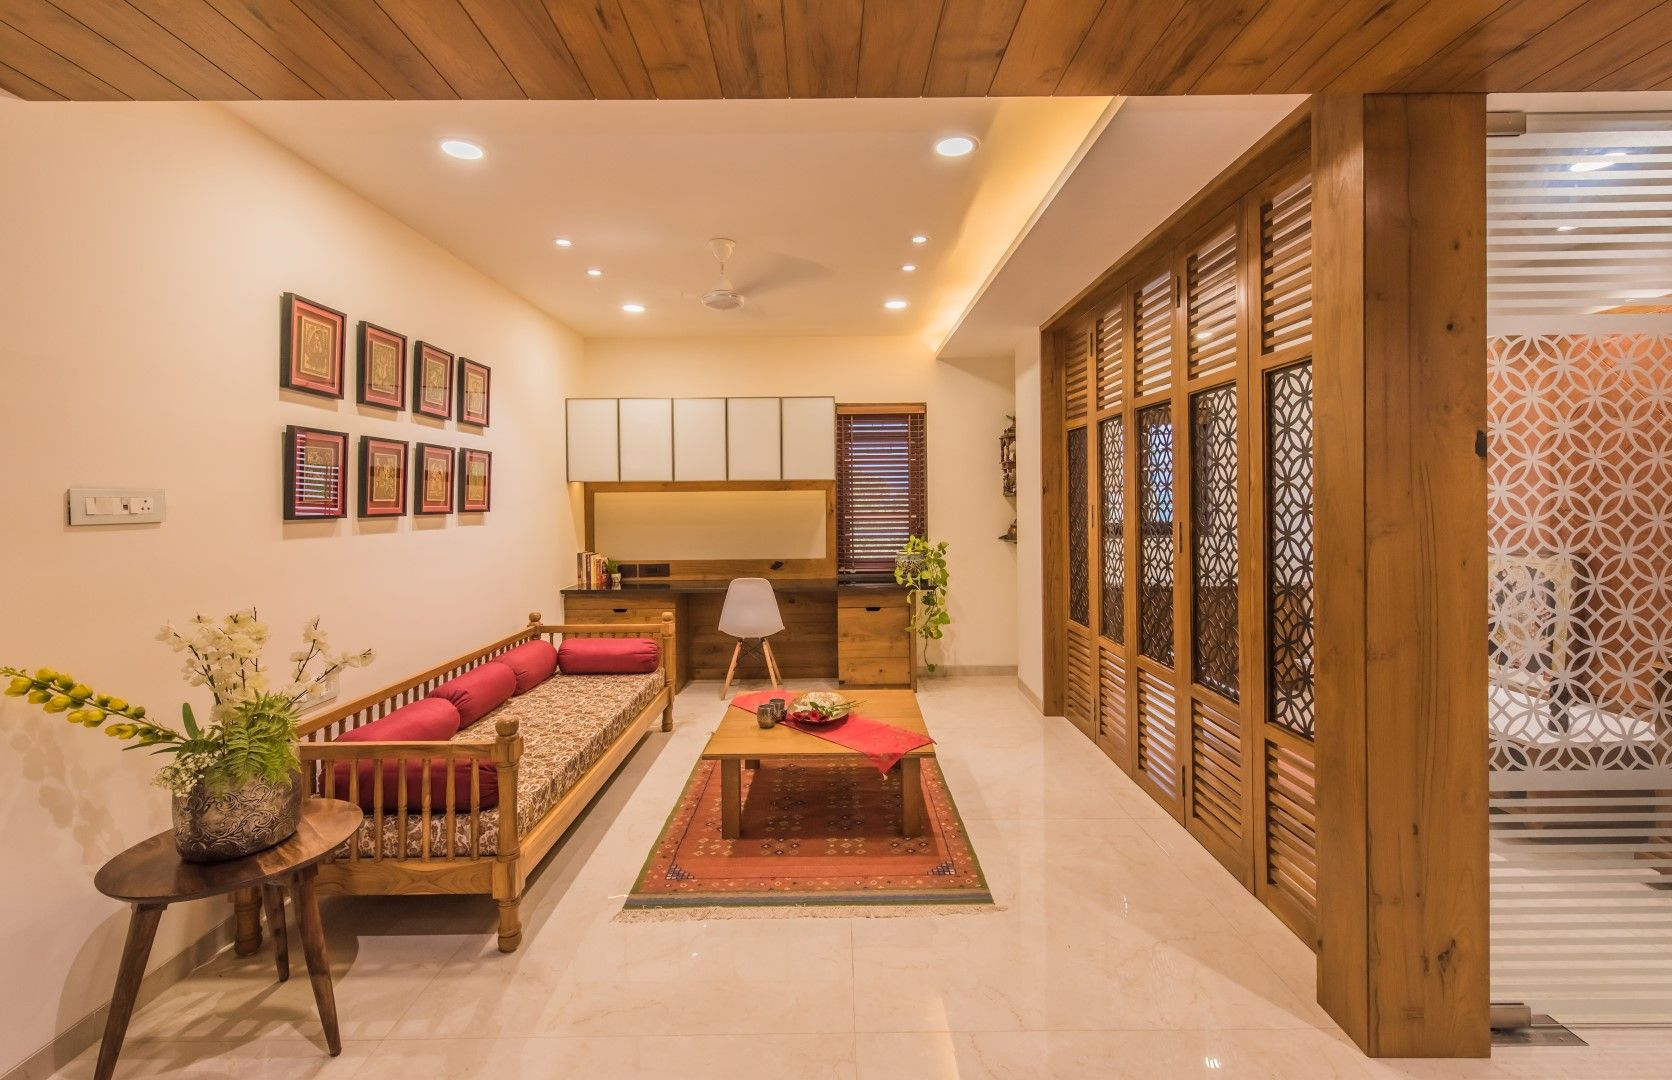 Contemporary Indian Style Apartment Interiors Indian Interior Design Apartment Interior Indian Interiors